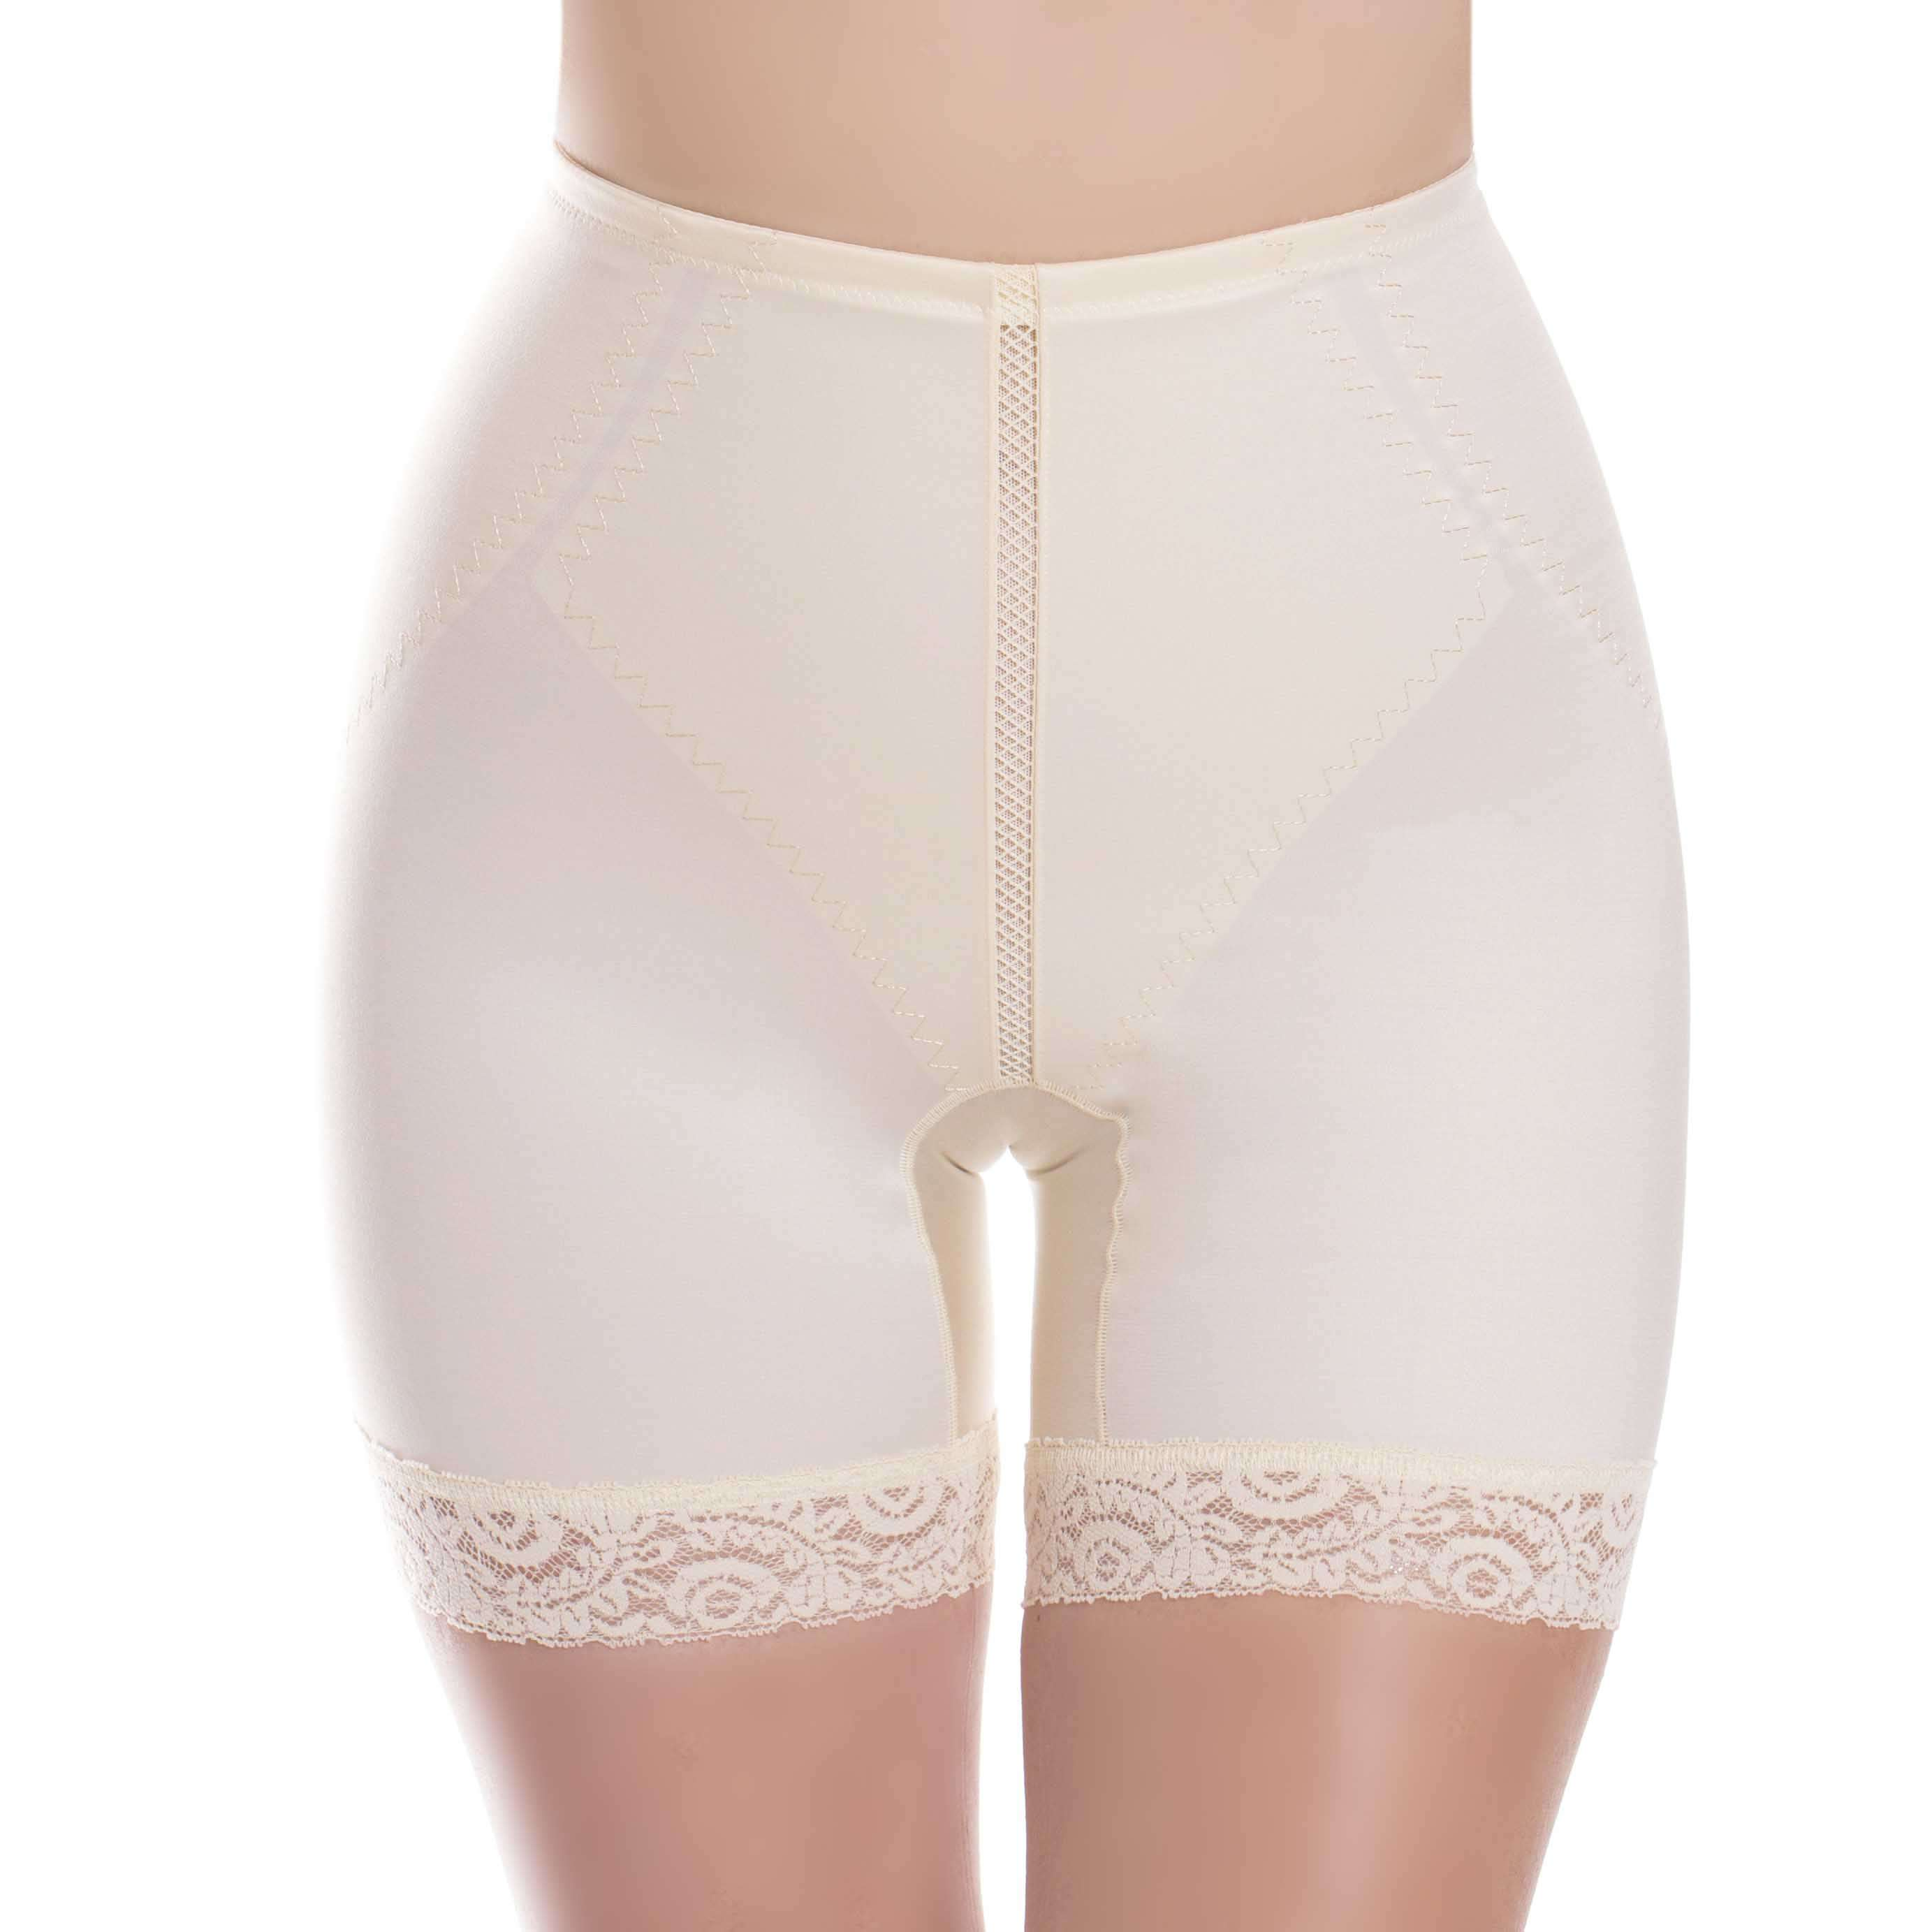 Buy Long Girdle 1005 LEPEL only € 32,90